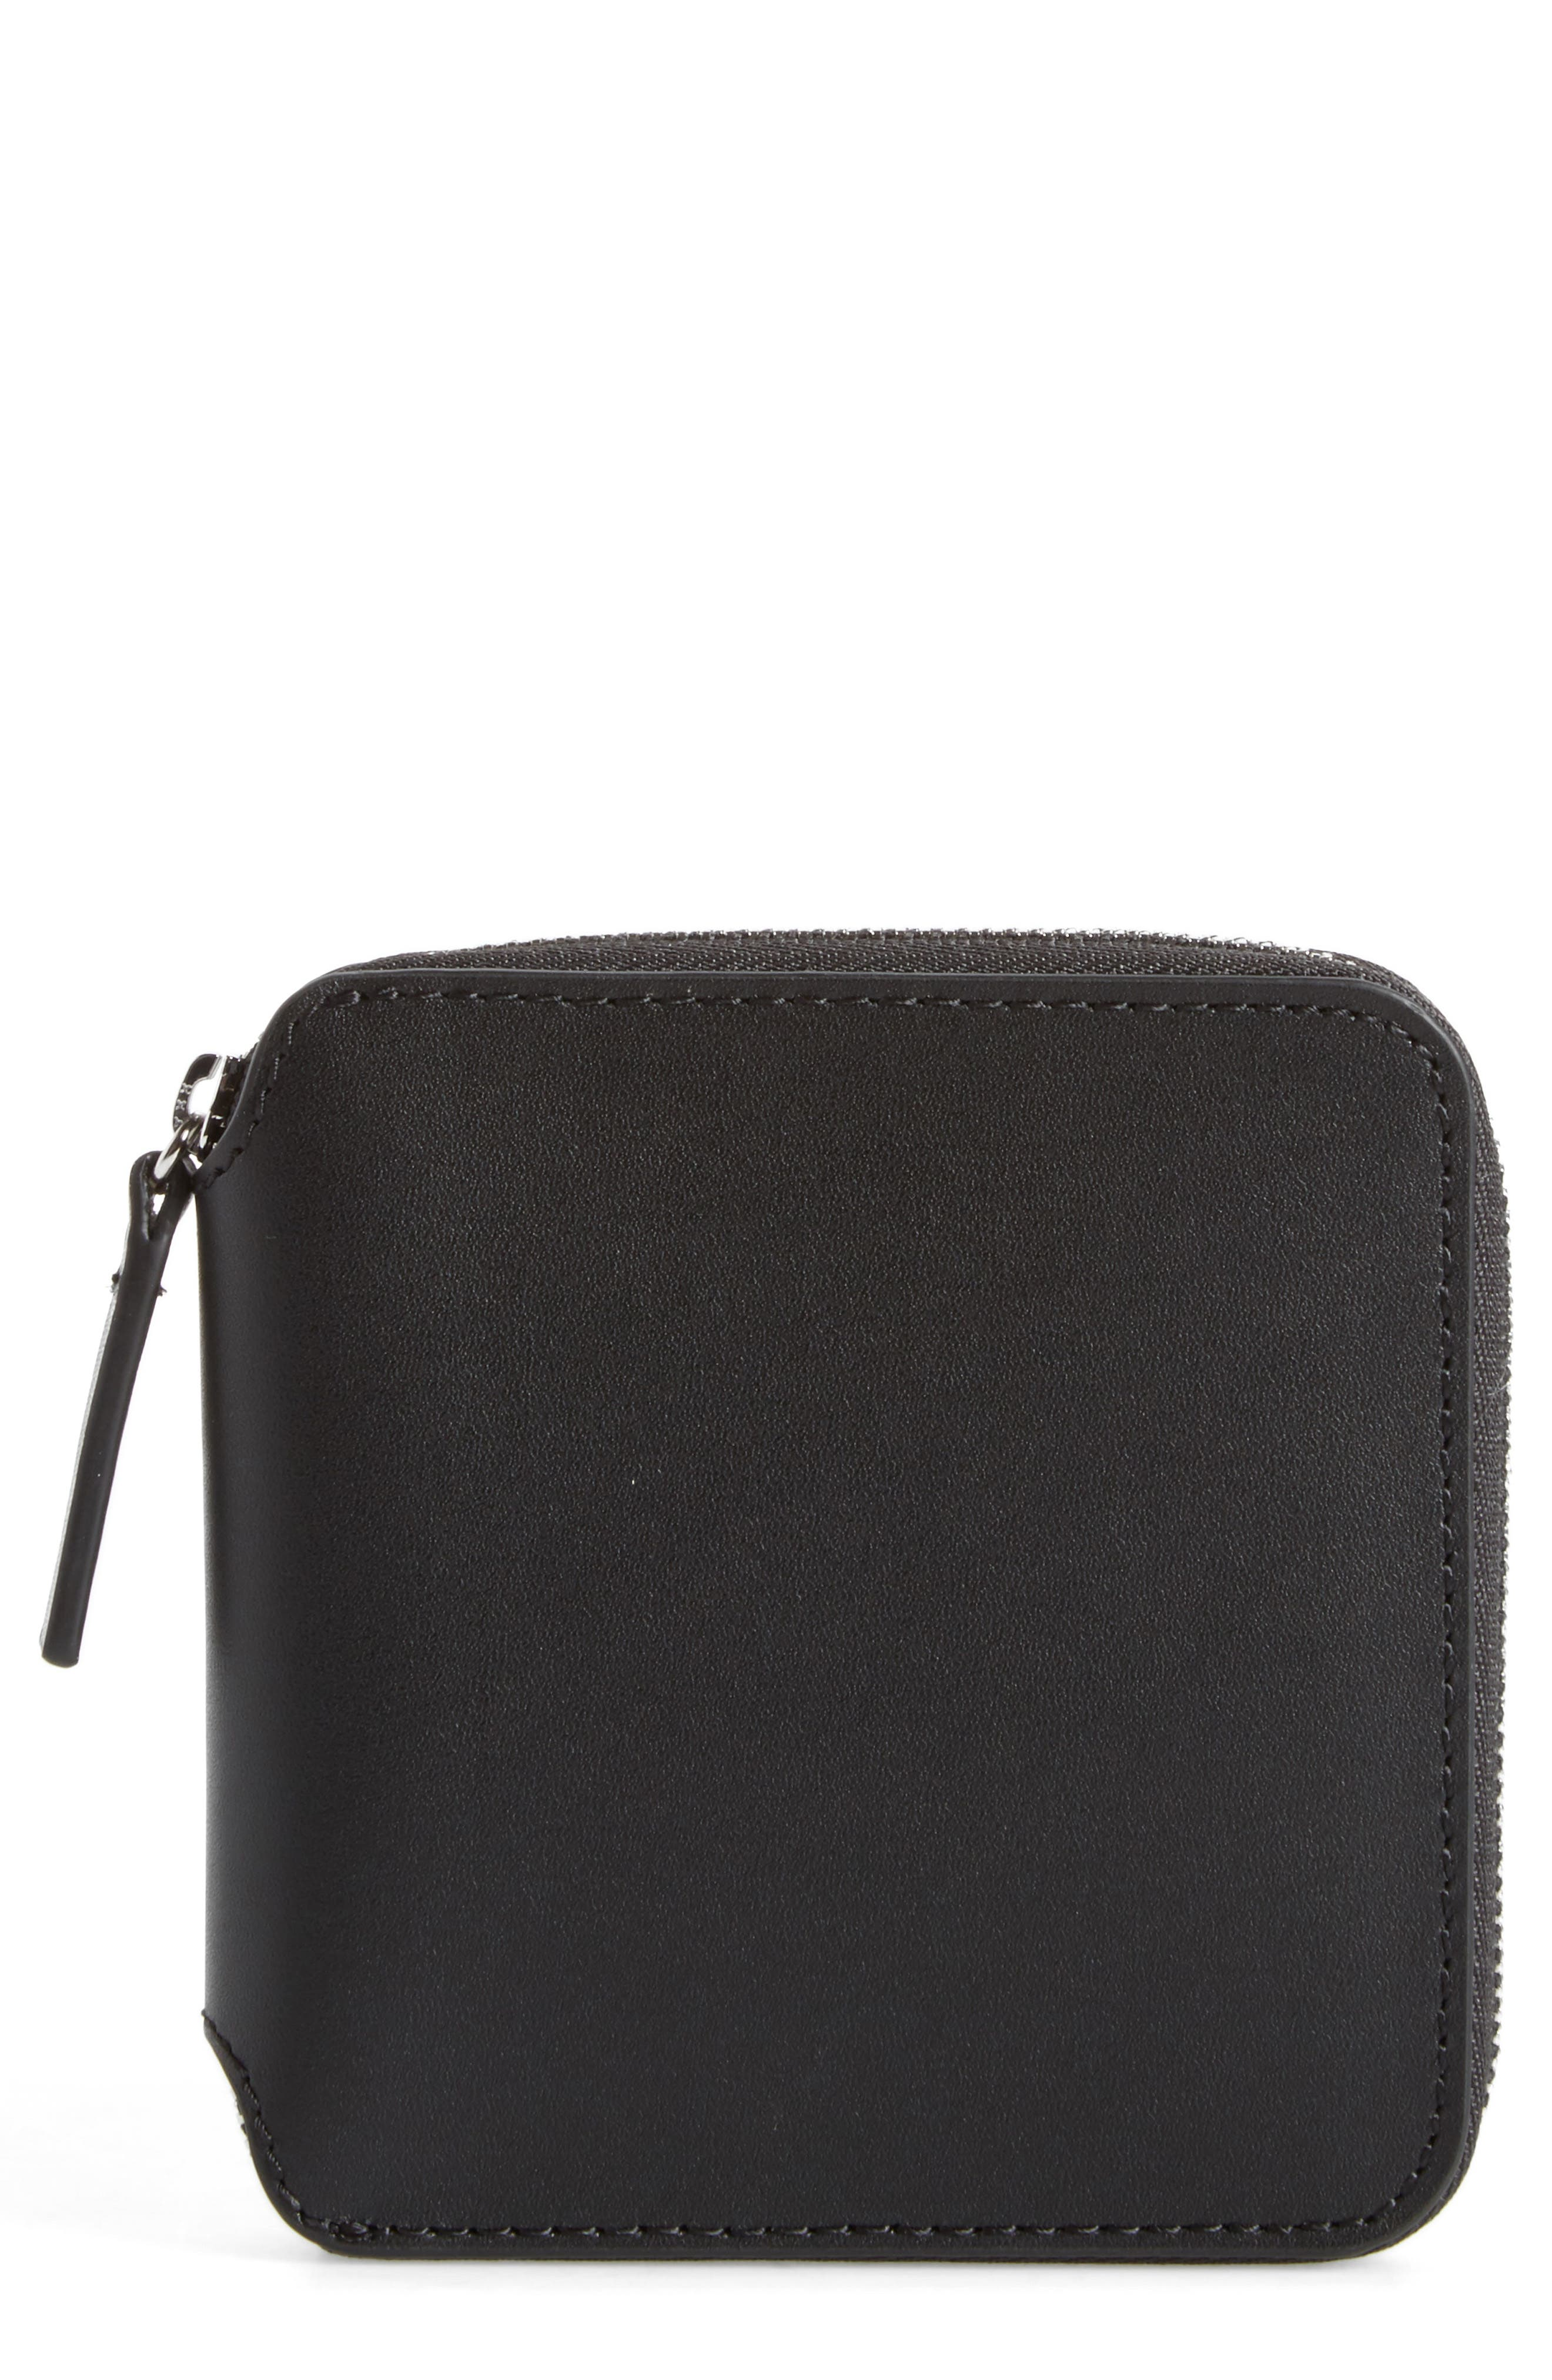 BAGGU,                             Zip Around Square Leather Wallet,                             Main thumbnail 1, color,                             001